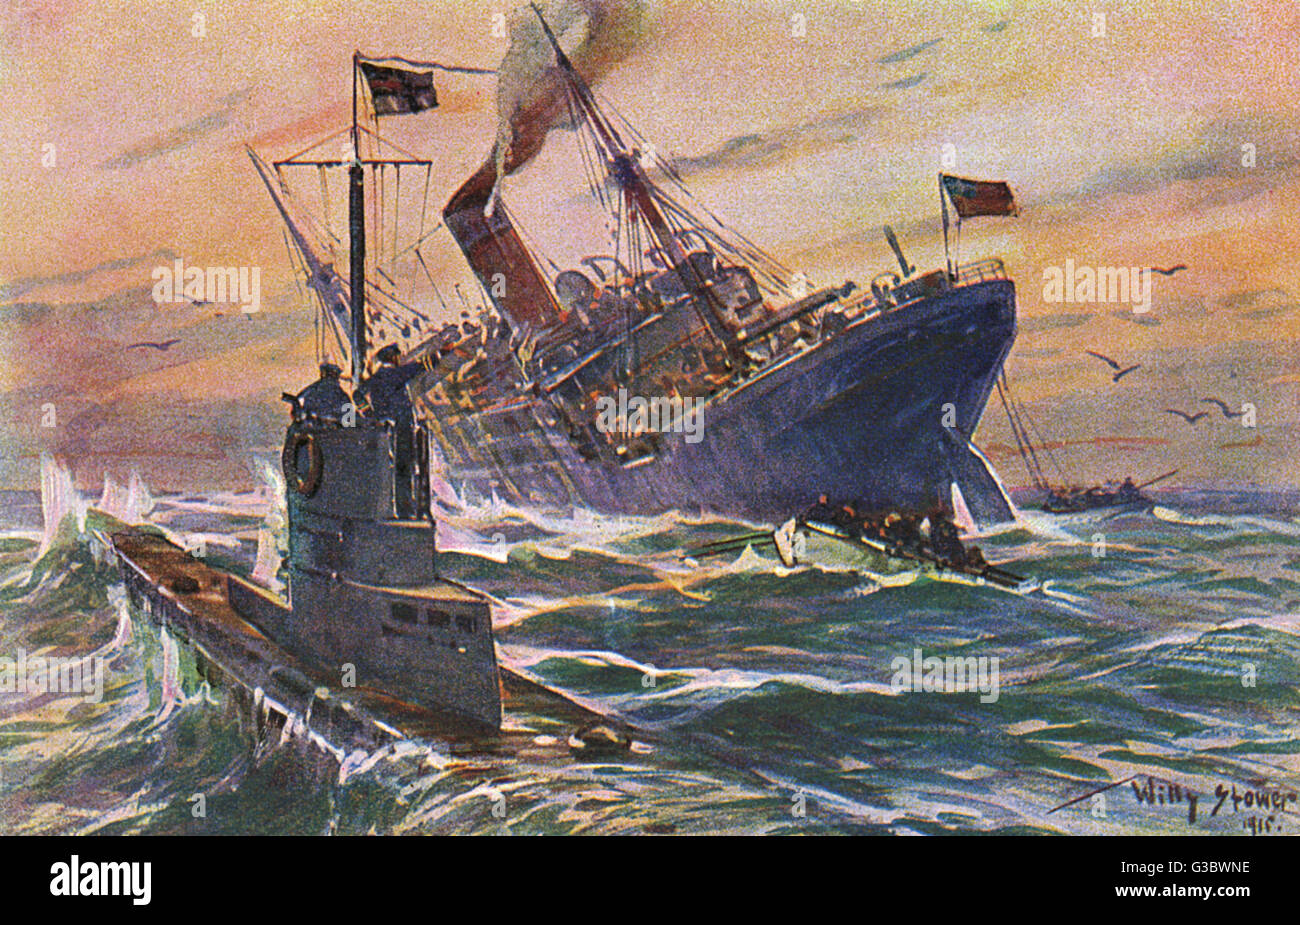 WWI German U-boat attack on an English Commercial ...